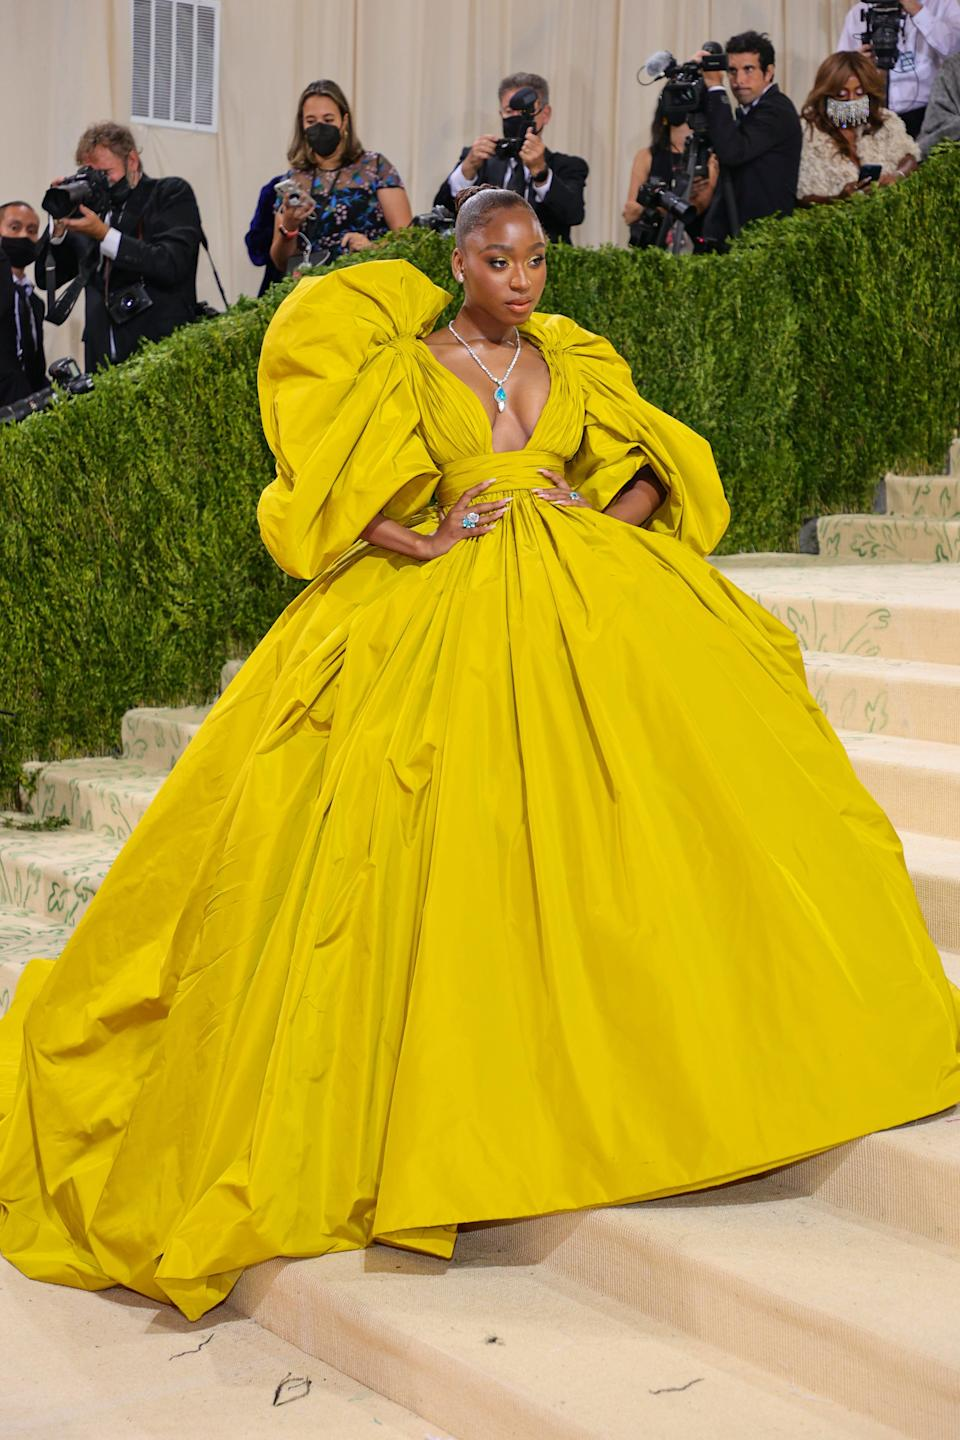 Normani at the 2021 Met Gala.